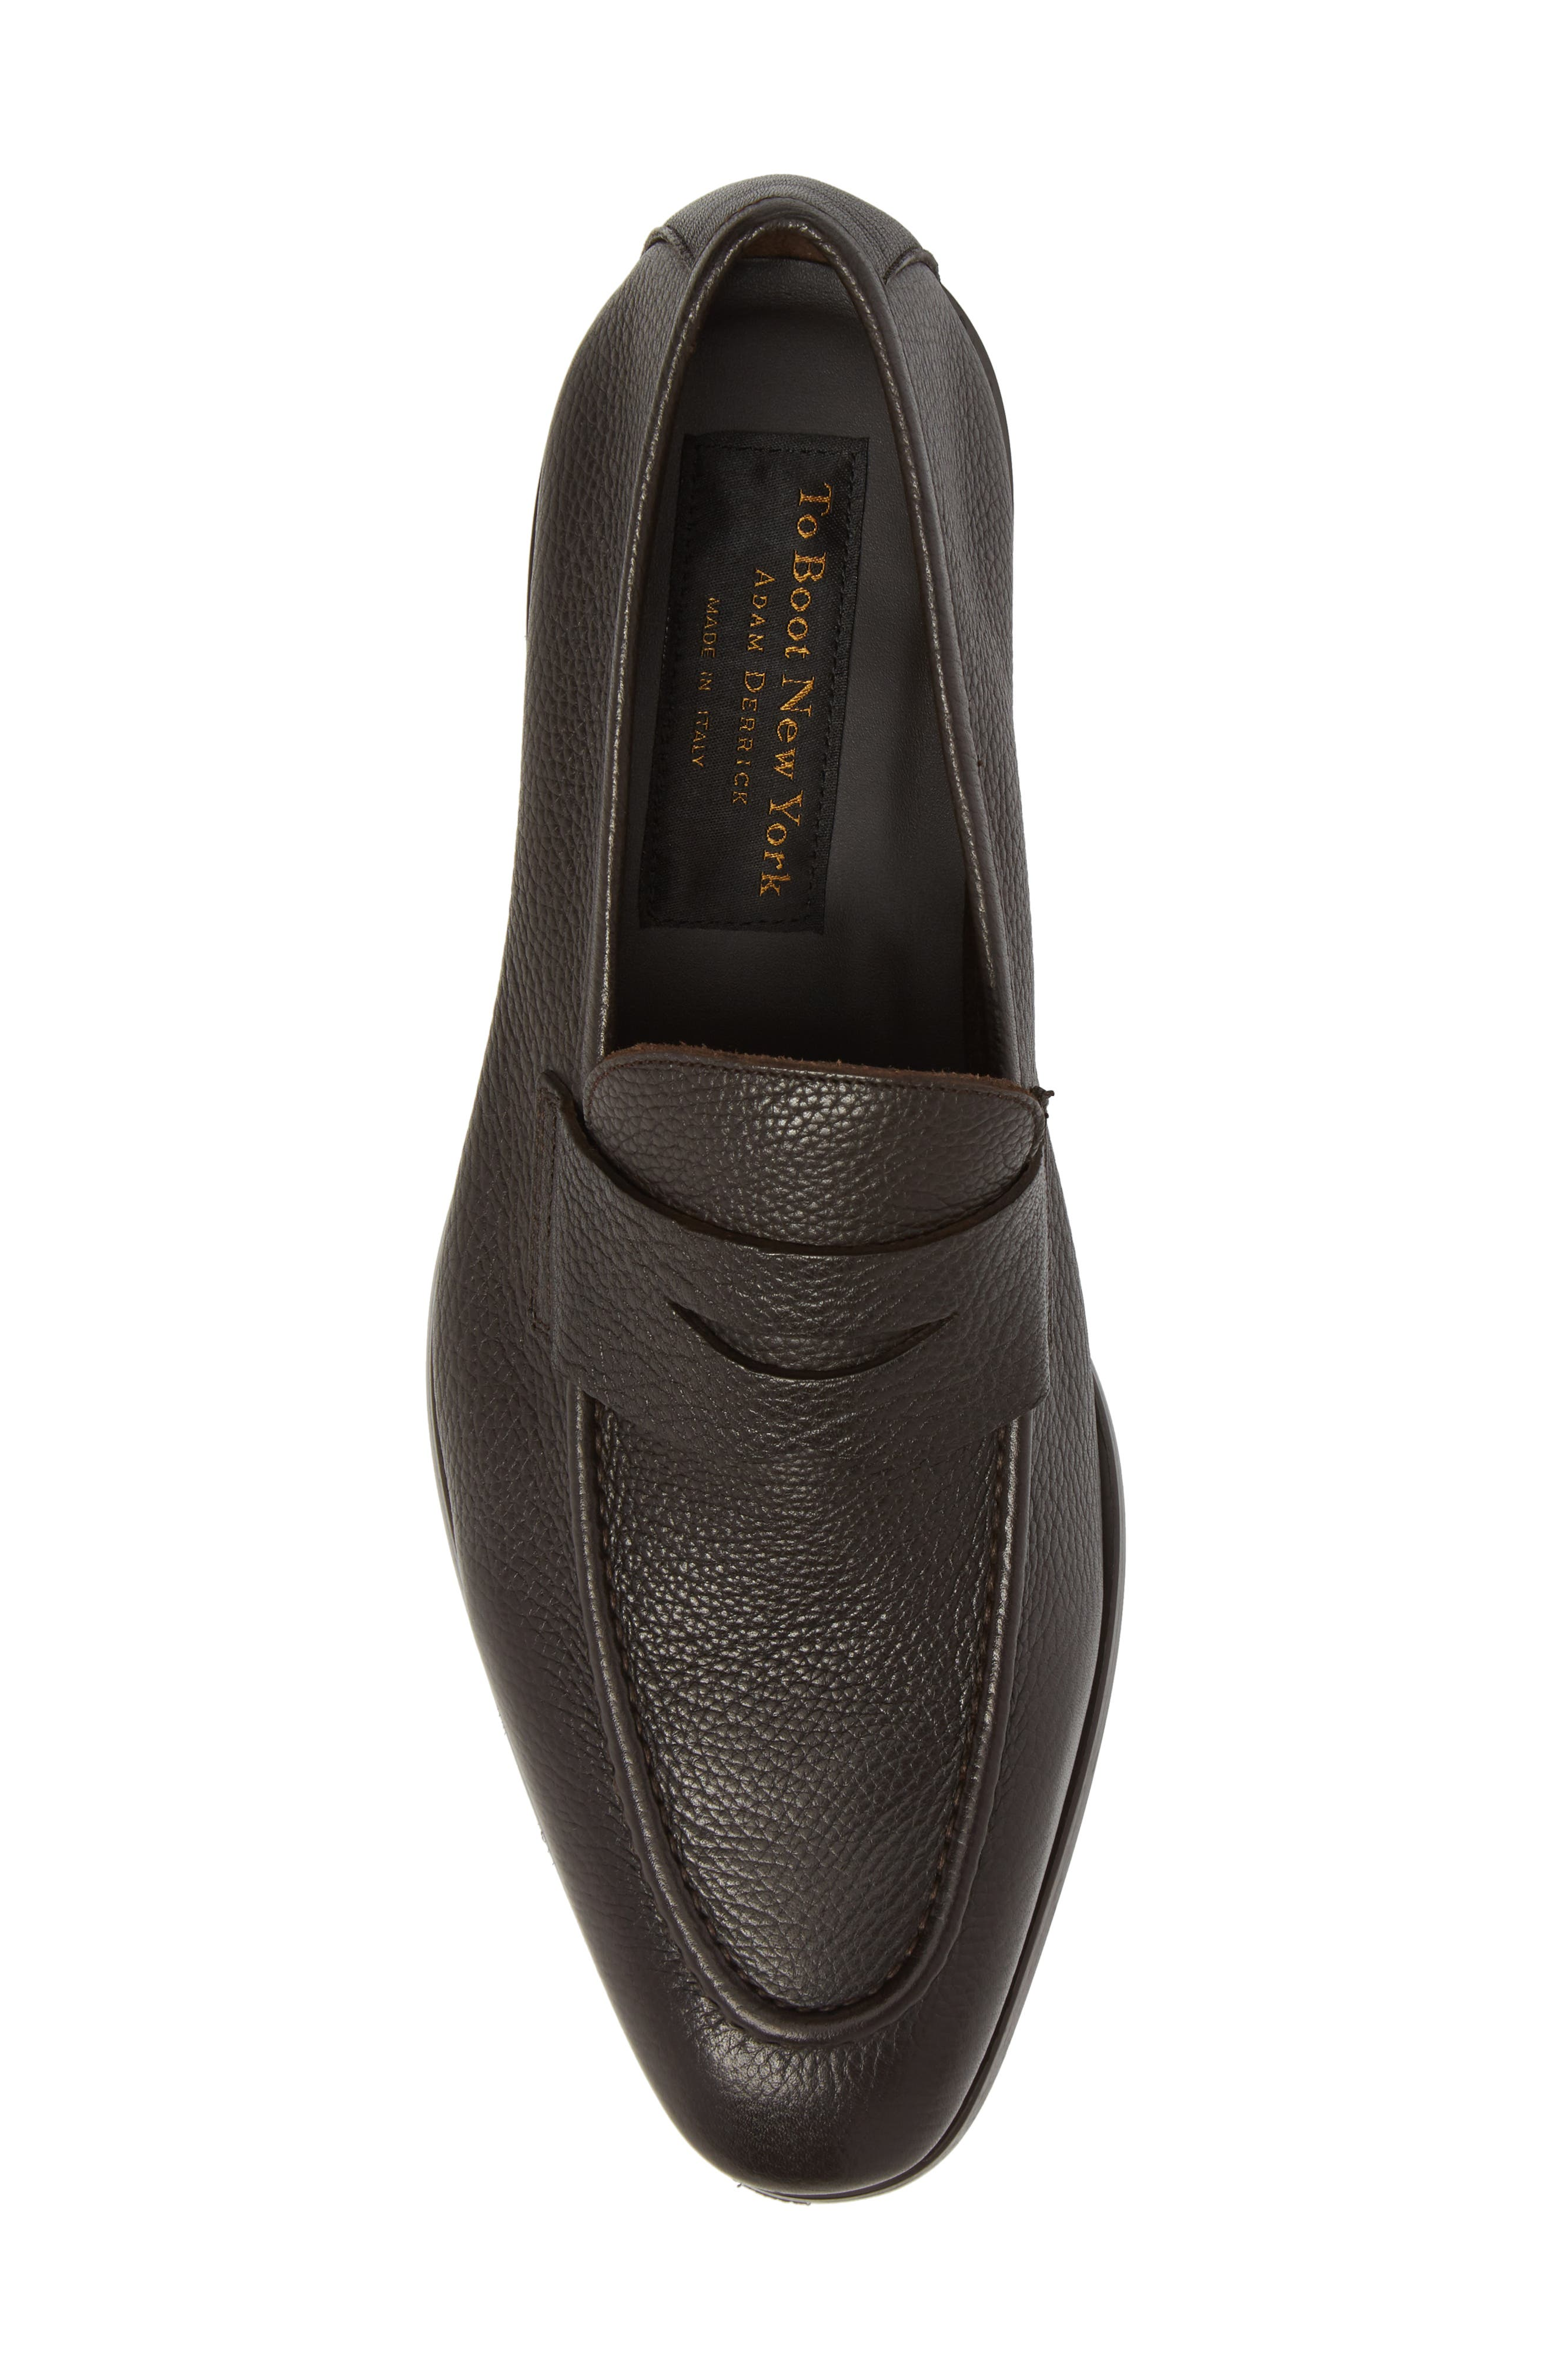 Johnson Penny Loafer,                             Alternate thumbnail 5, color,                             Tmoro Leather